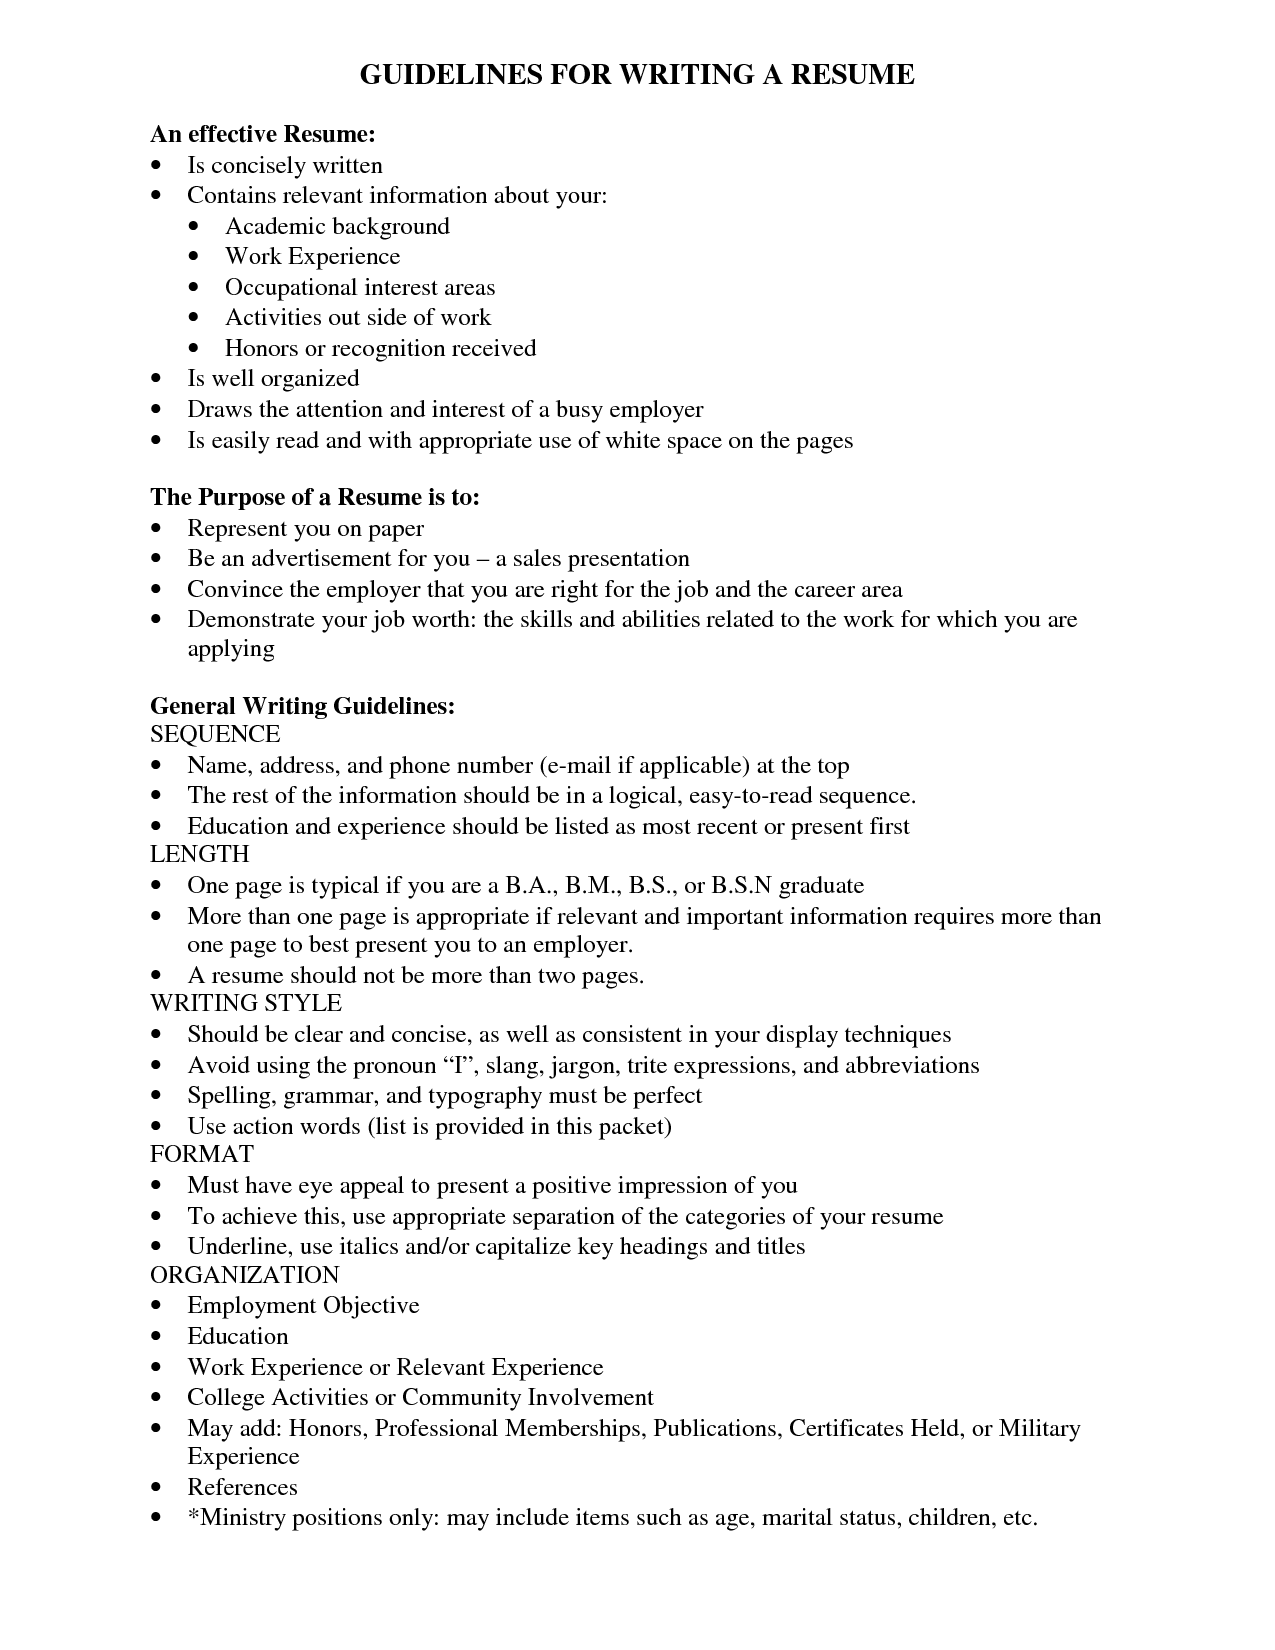 guidelines for resume writing kalushvideocomwriting a resume cover letter examples - Guidelines For Resume